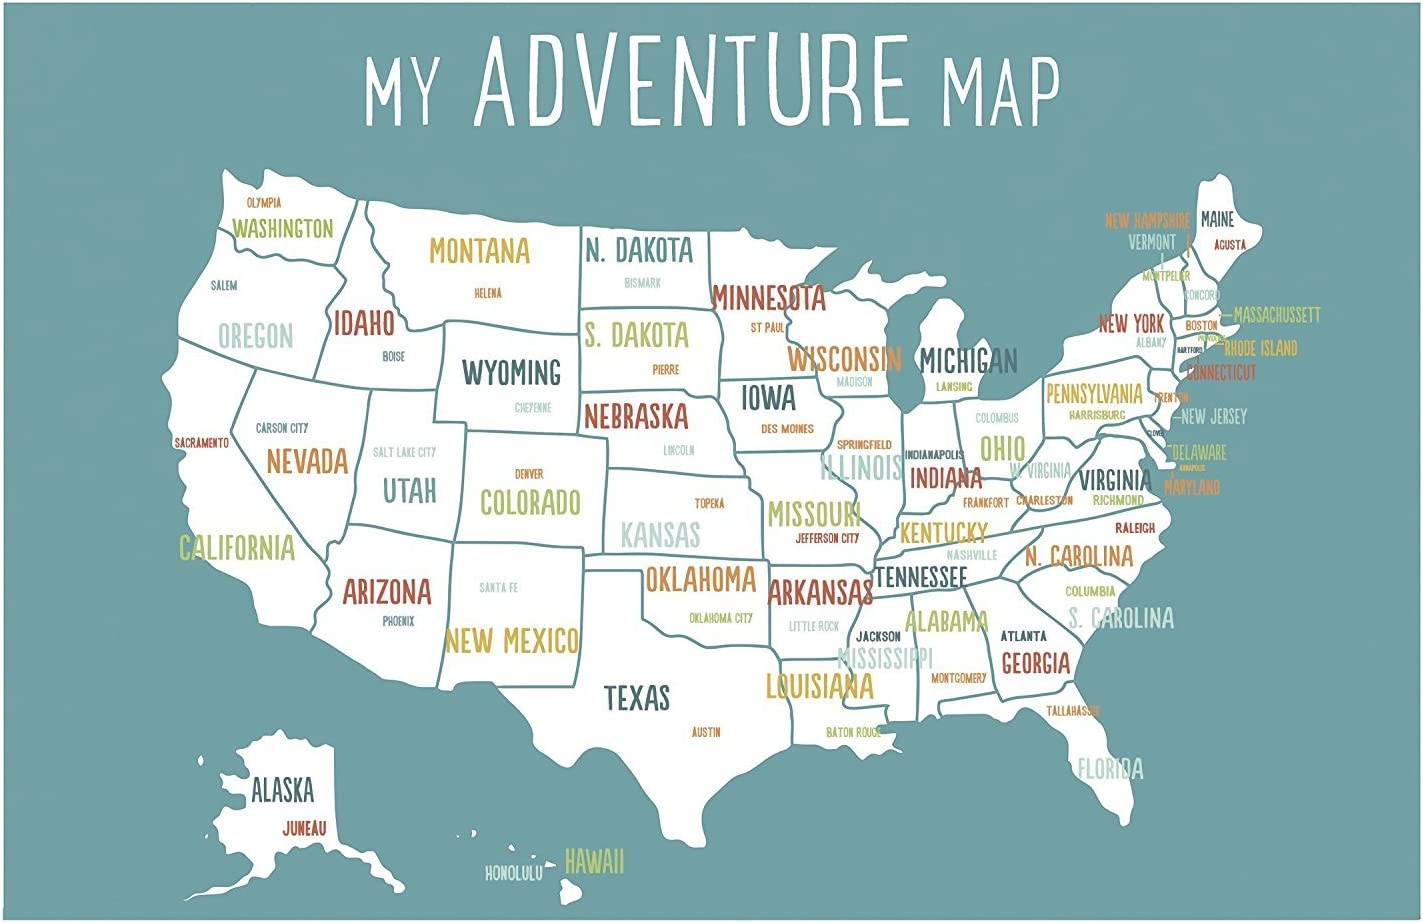 United States map 2 printable files download and print any size between /'5x7 and  16x20 JPEG nursery map for boys